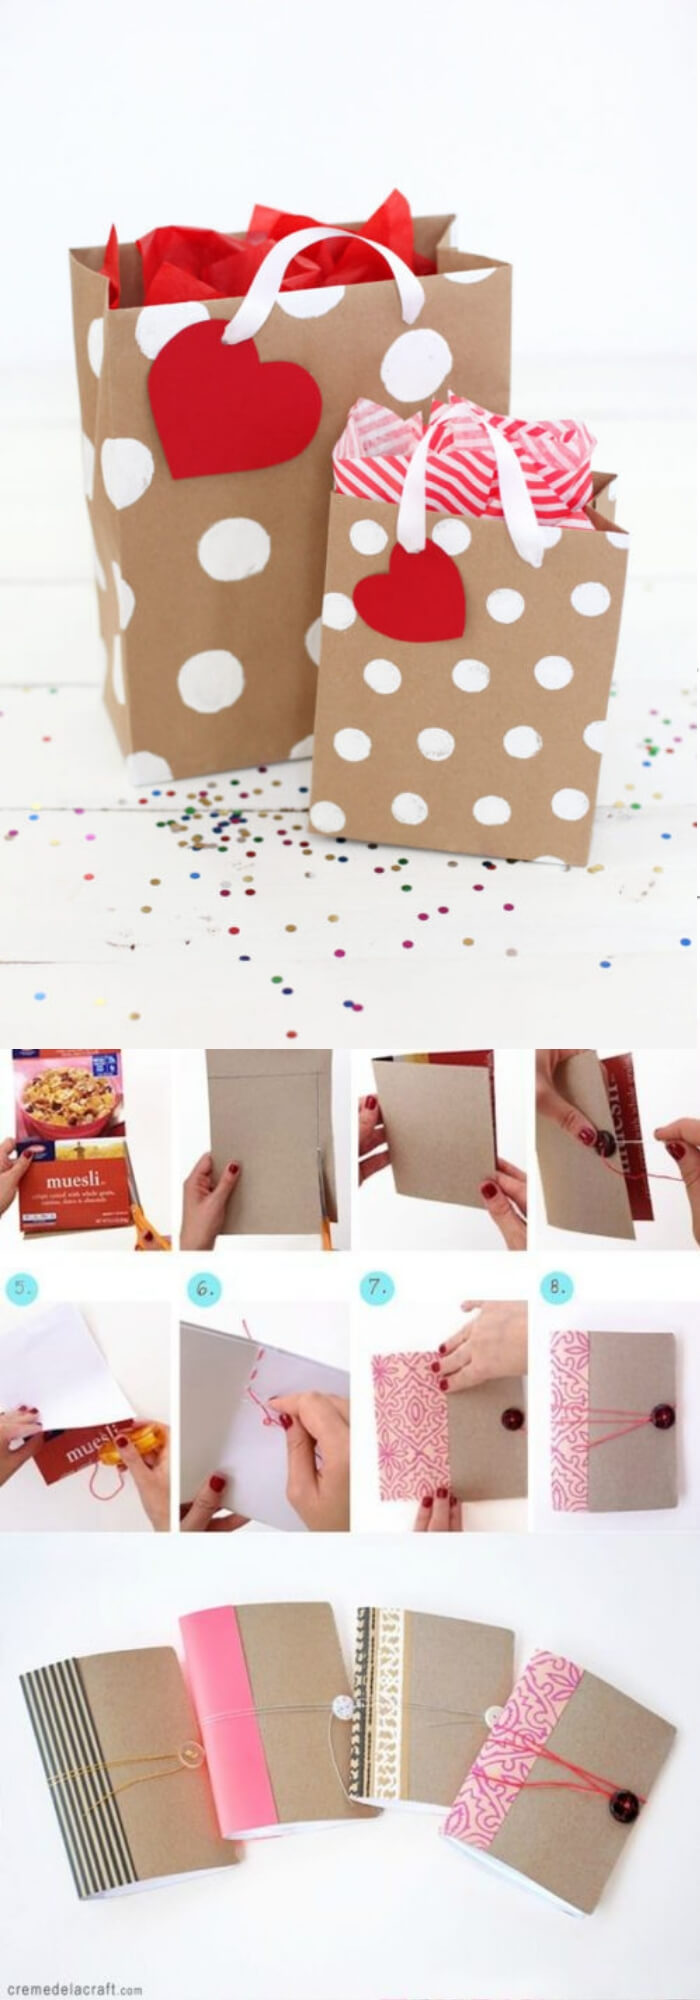 Cereal Boxes Become Gift Bags when Reused | Environmentally-Friendly Valentine's Day Gifts